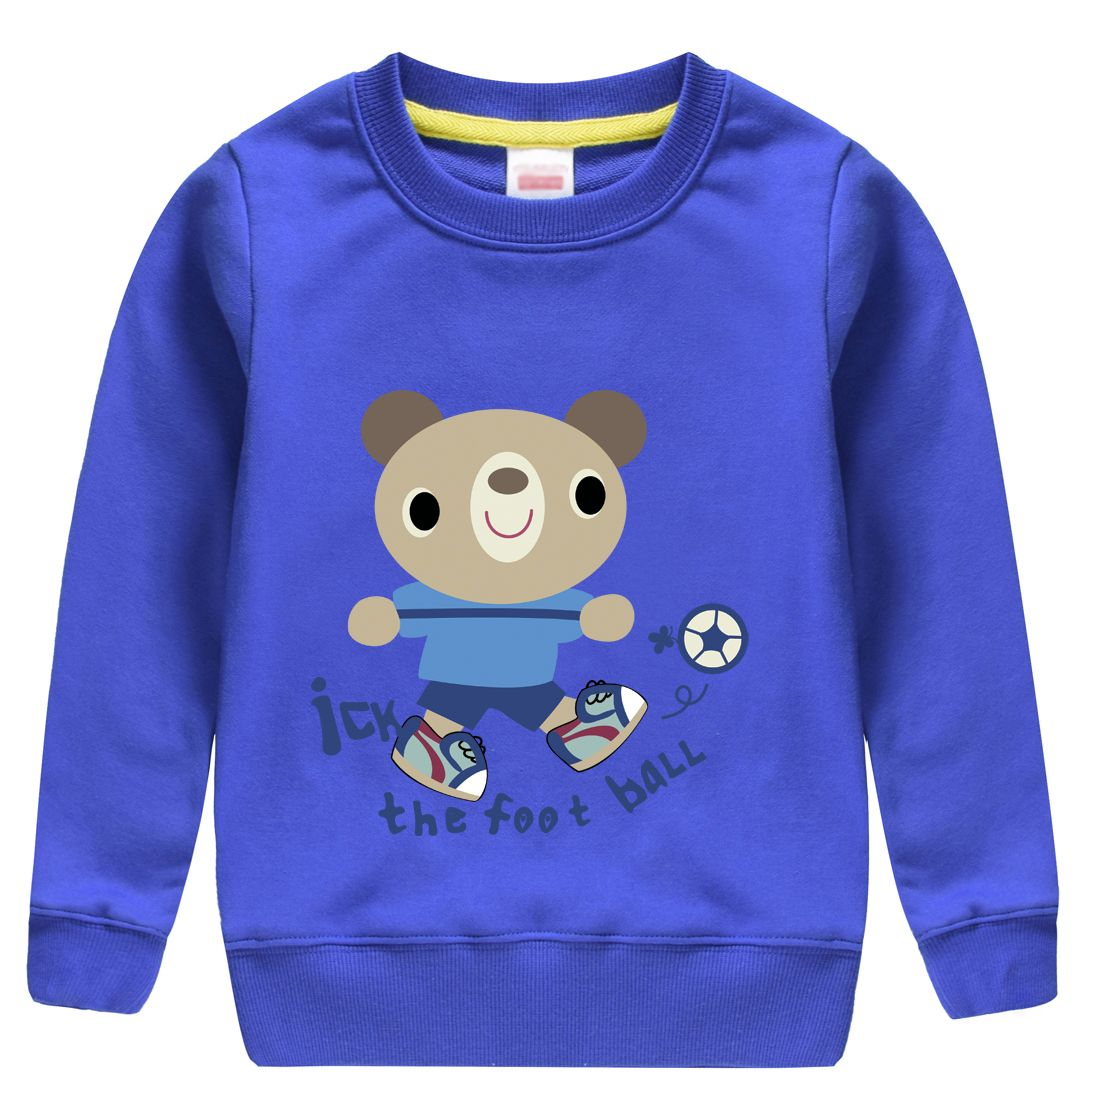 Infant Baby Girl Boy Letter Print Sweater Long Sleeve Pullover Sweatshirt Top Fall Winter Outdoor Outfit Clothes